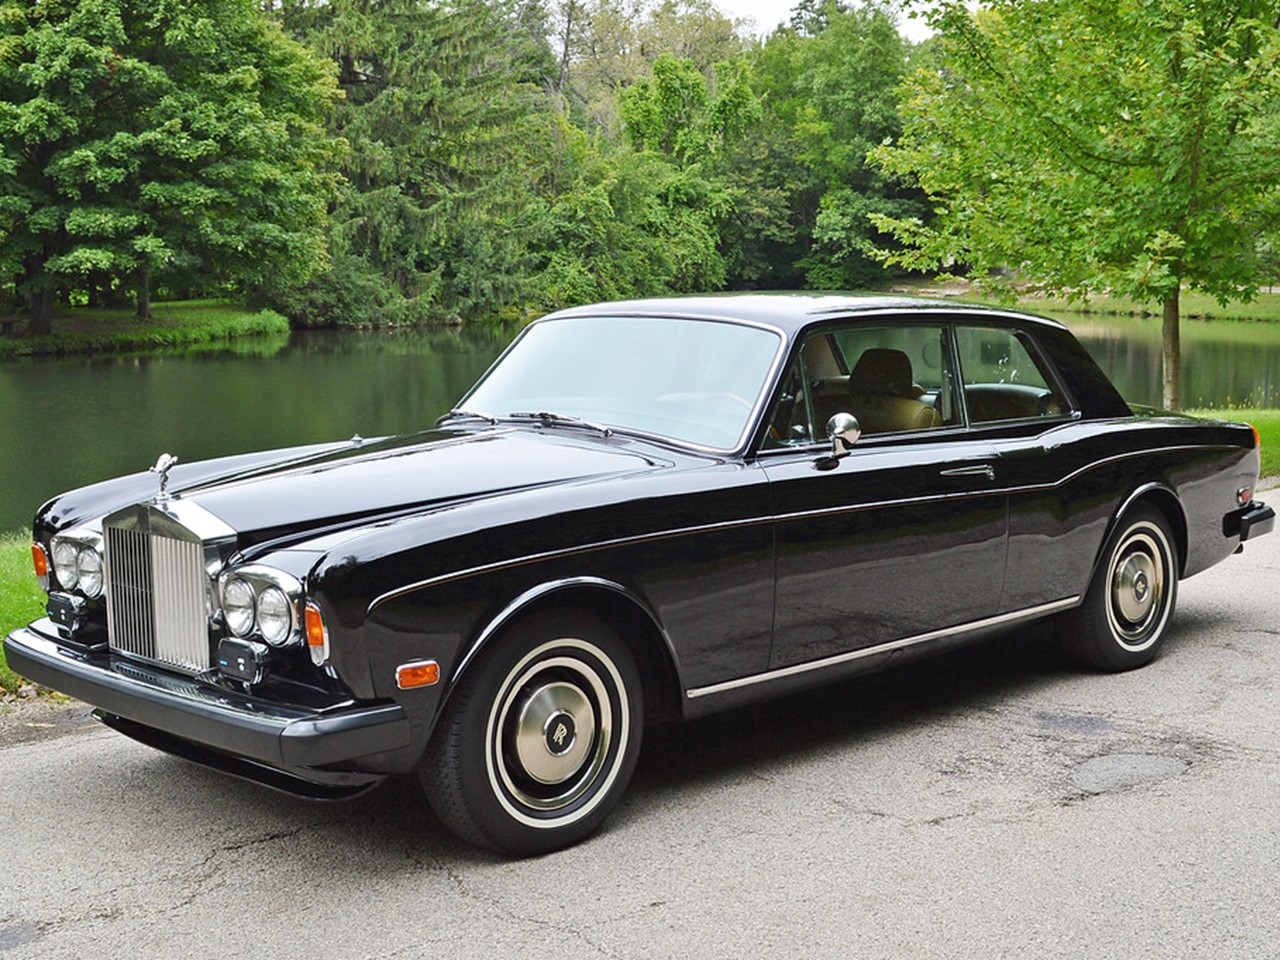 1974 rolls royce corniche coachbuilt fixedhead coup notoriousluxury. Black Bedroom Furniture Sets. Home Design Ideas